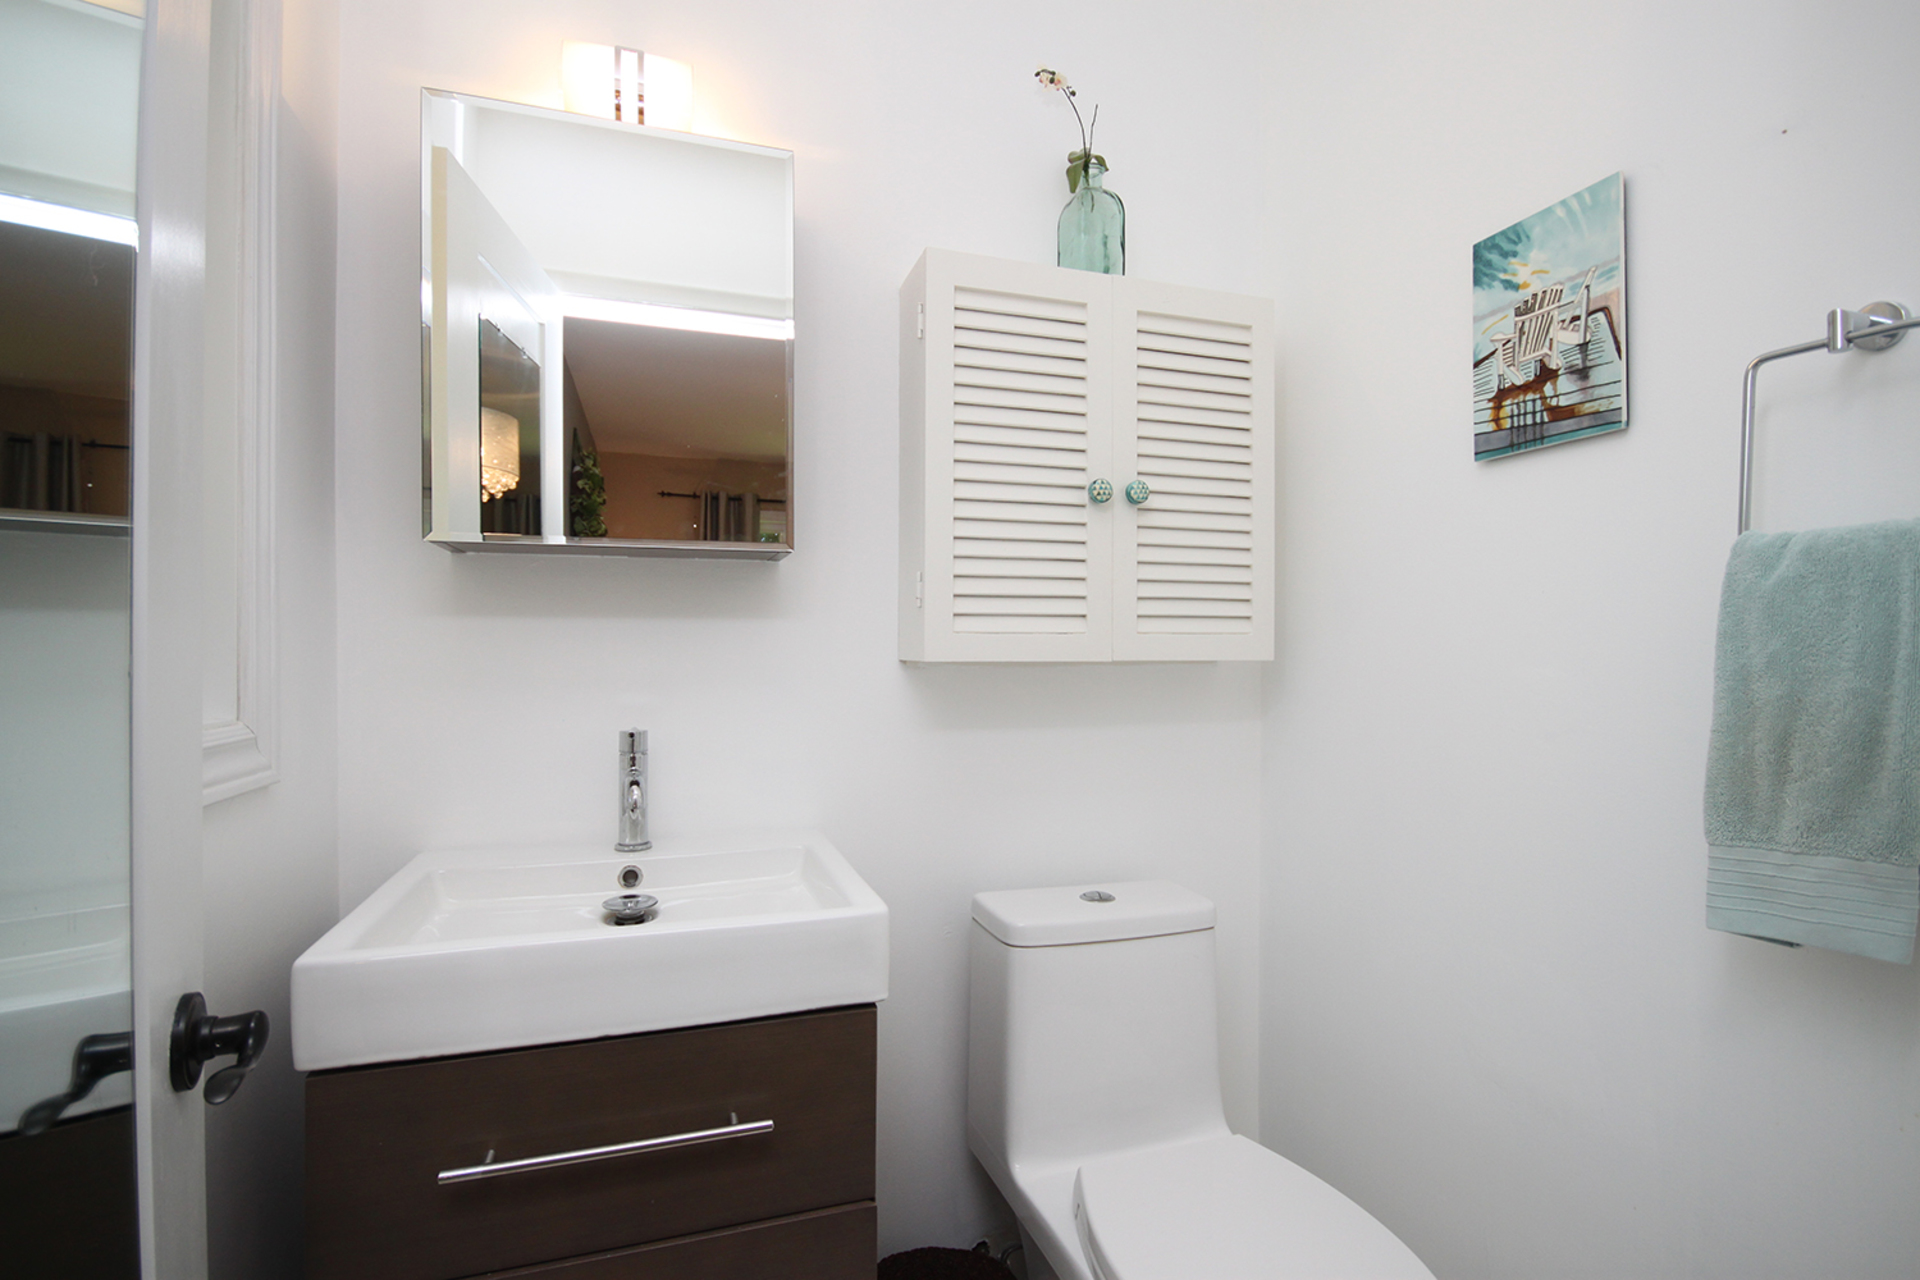 2 Piece Ensuite Bathroom at 25 Dunlace Drive, St. Andrew-Windfields, Toronto